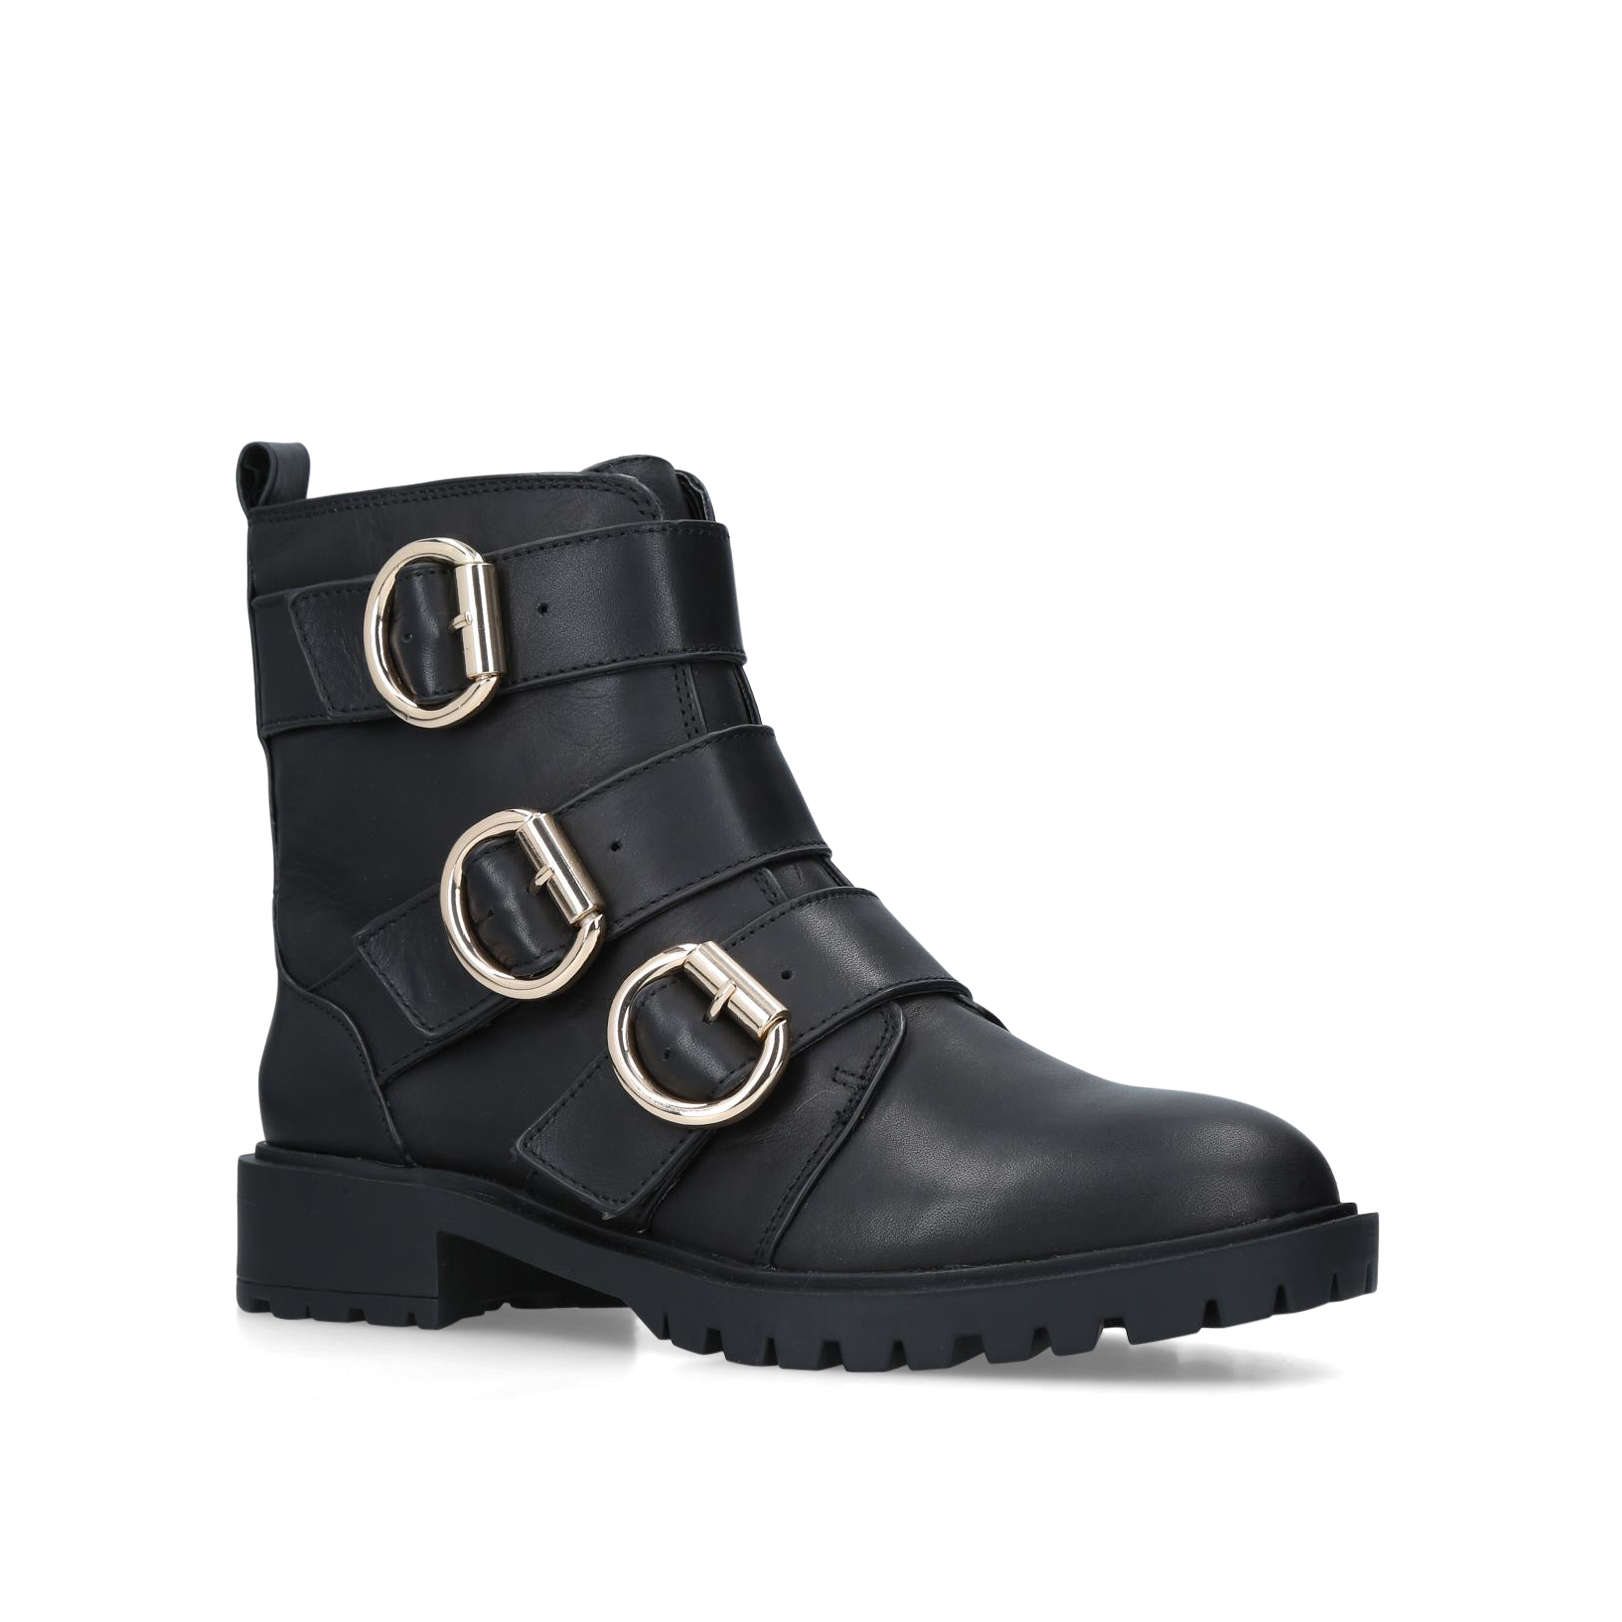 653f6570dc Tania Leather Biker Boots